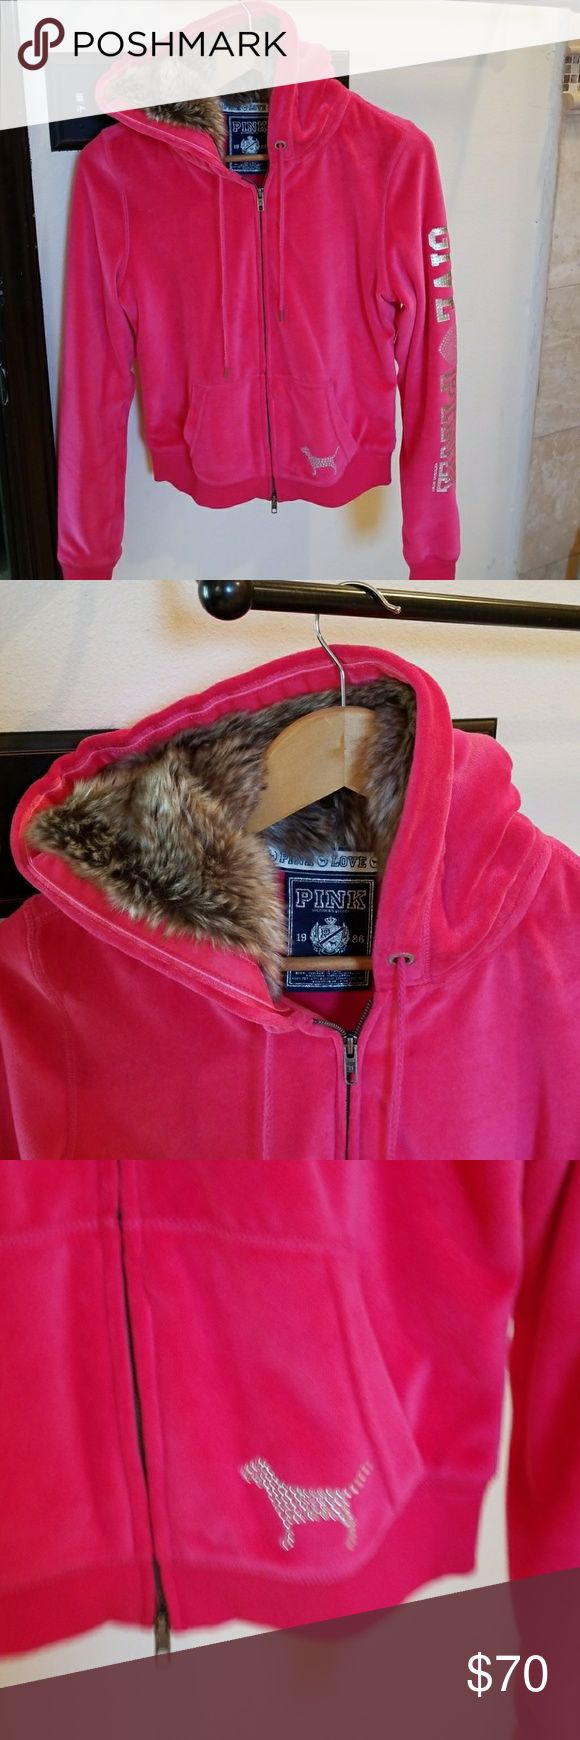 Victorias secret pink zip up velour sweater In great condition hot pink with Crystal embellishments Victoria's Secret Sweaters